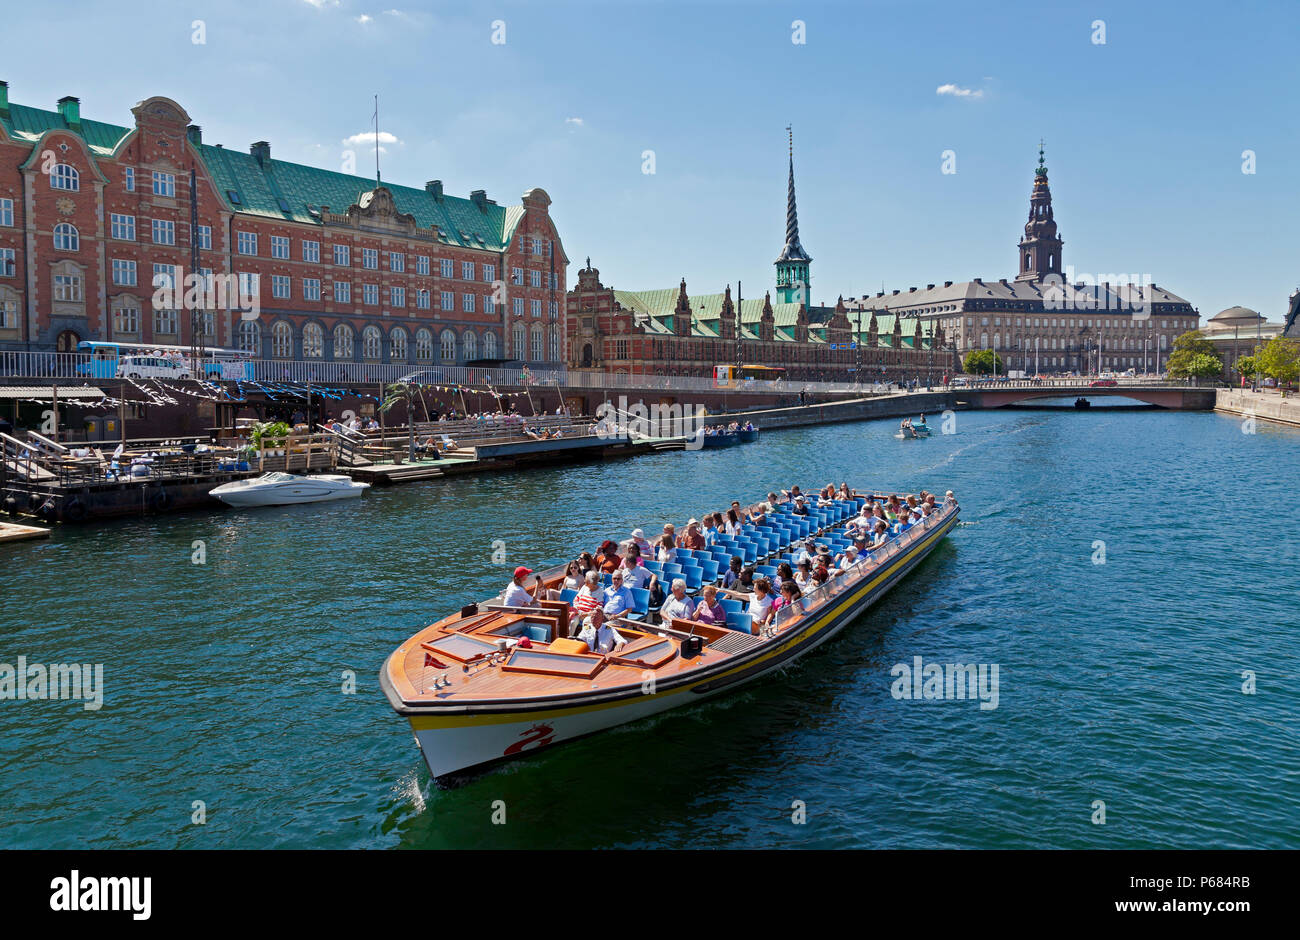 Canal cruise boat in Slotsholm Canal in Copenhagen.Christiansborg Castle, the Parliament, the old stock exchange and dockside cafe and kayak rental. Stock Photo